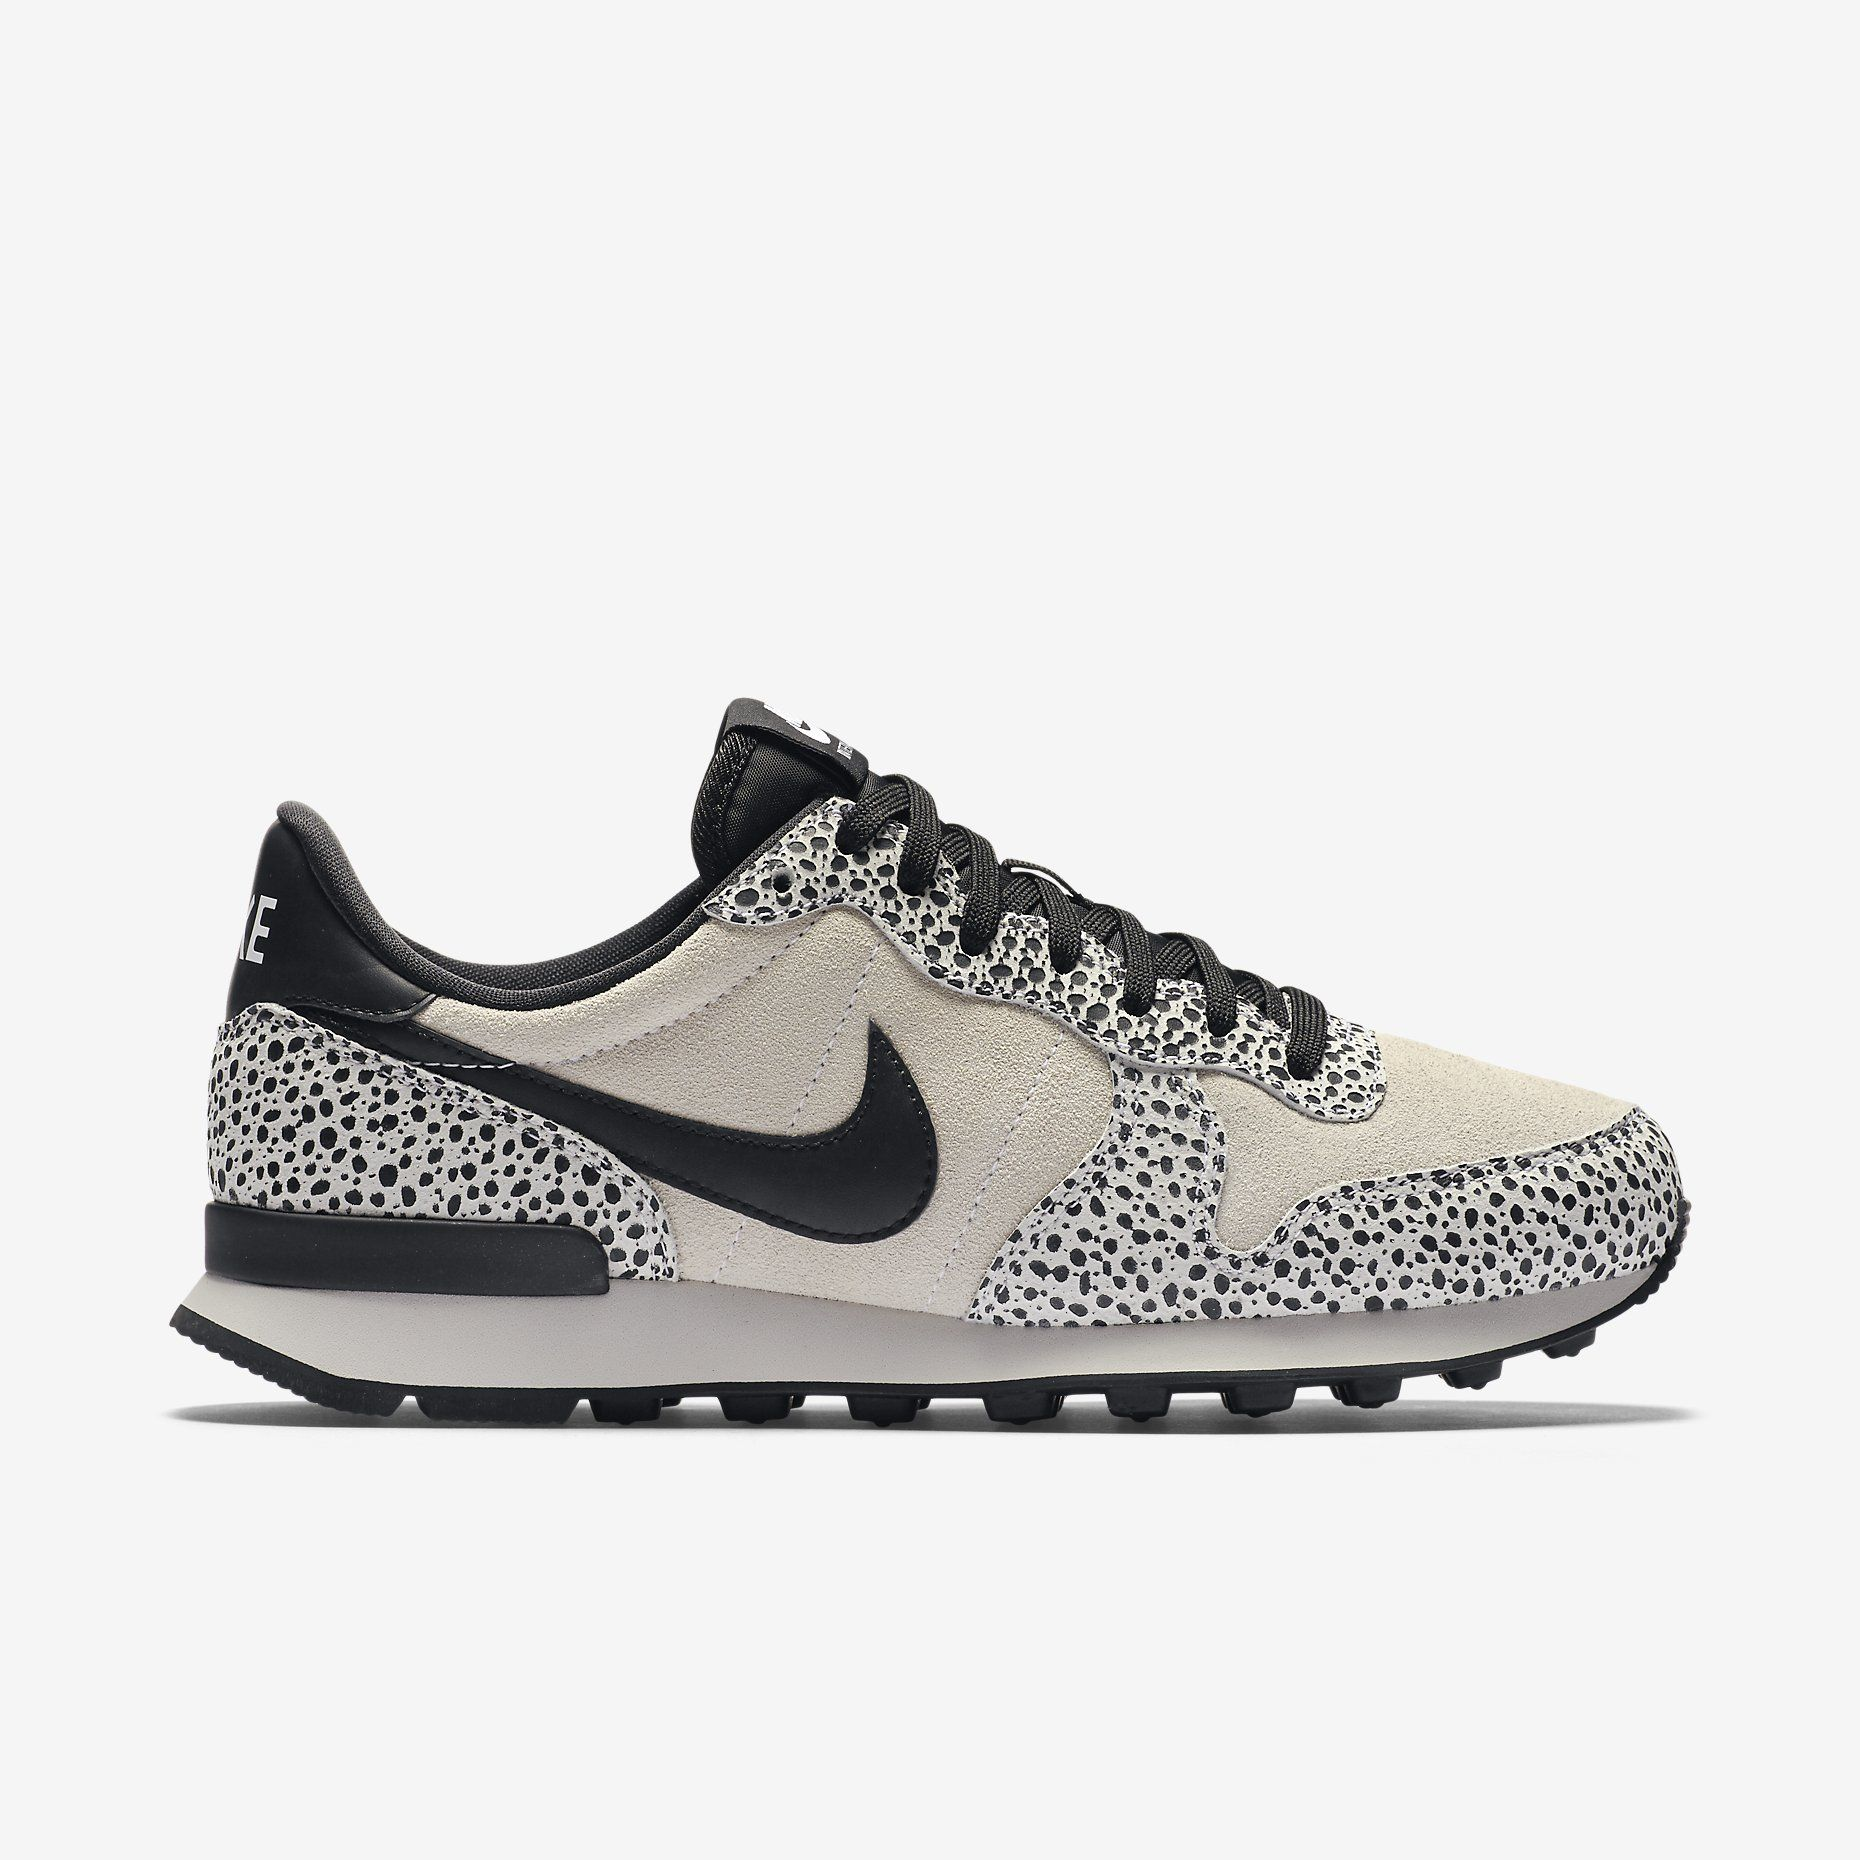 Shop Nike for shoes, clothing & gear at www.nike.com | Nike ...